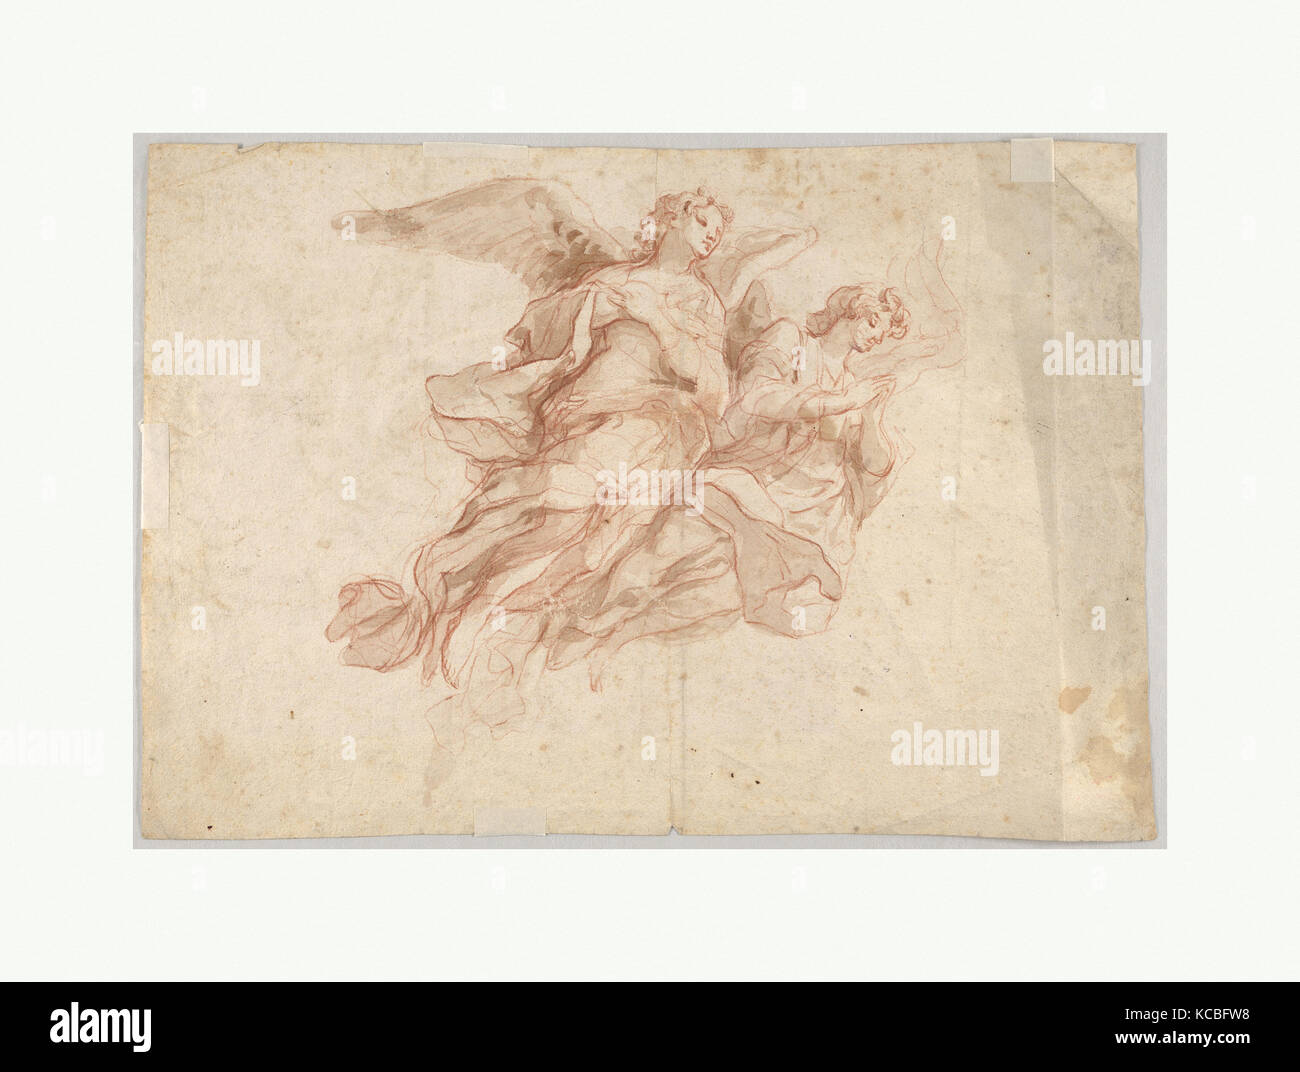 Two Angels Flying; verso: God the Father Seated in the Clouds and a Sketch of a Figure Flying, Cosmas Damian Asam, - Stock Image